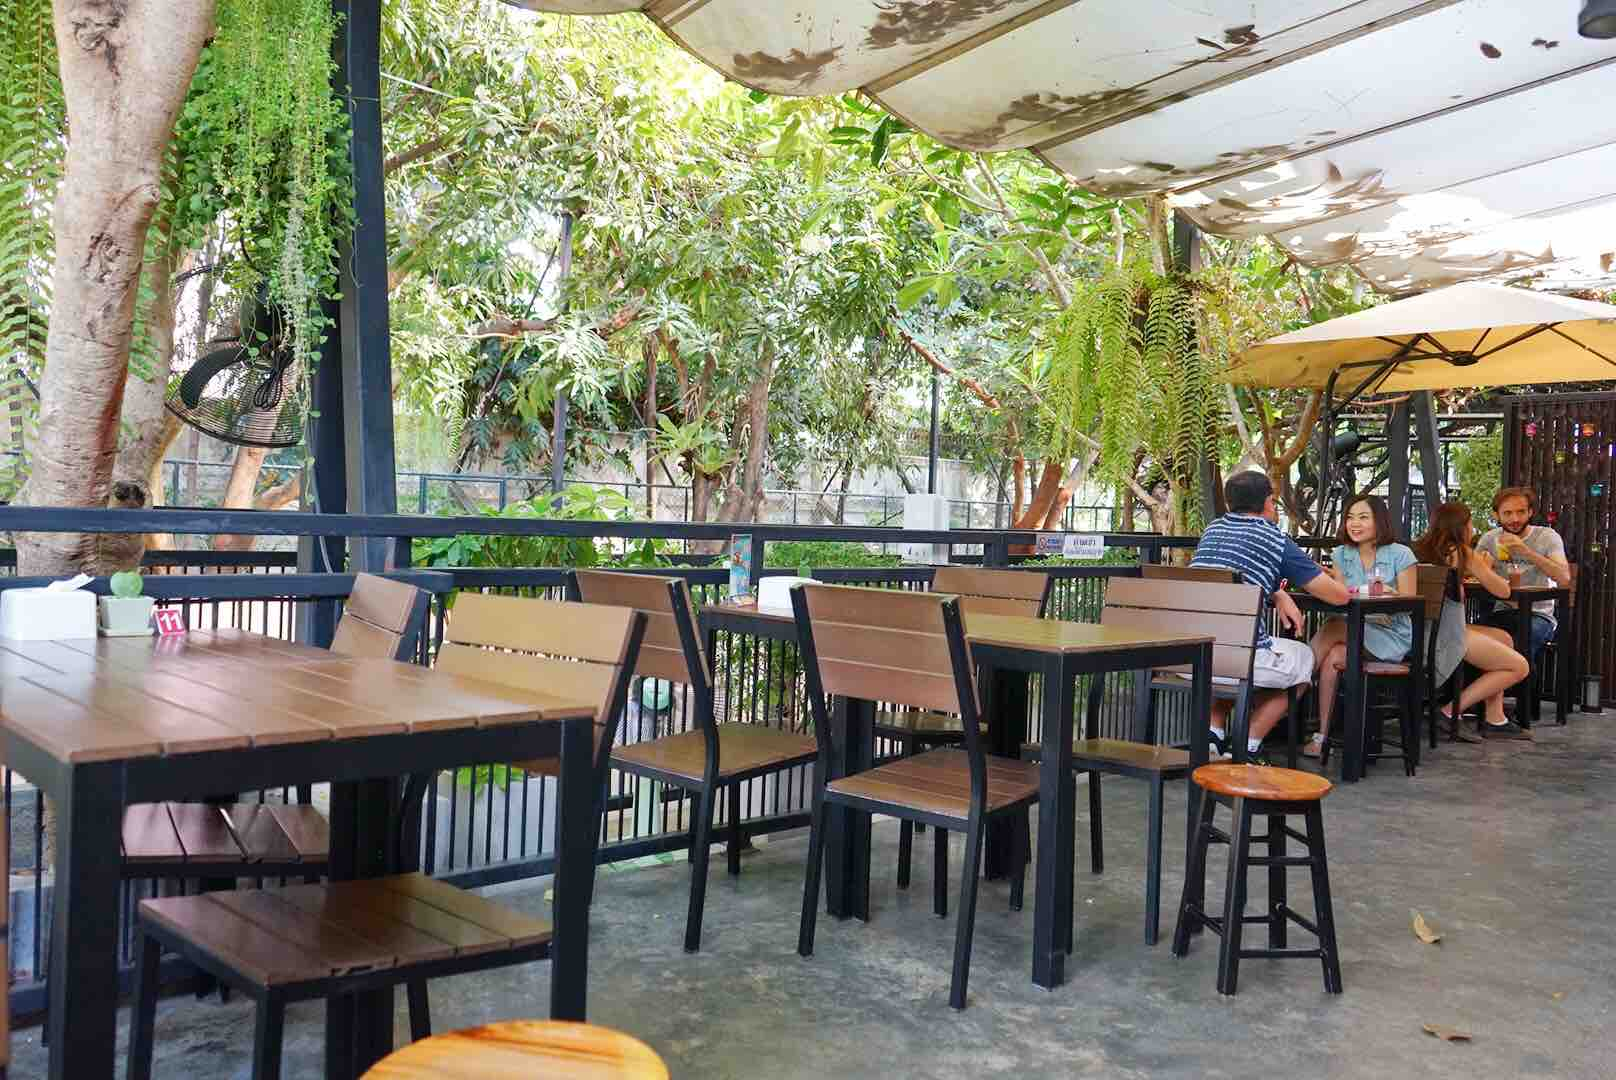 Outdoor Seating Area At Neverland Siberian True Love Cafe, Bangkok - AspirantSG